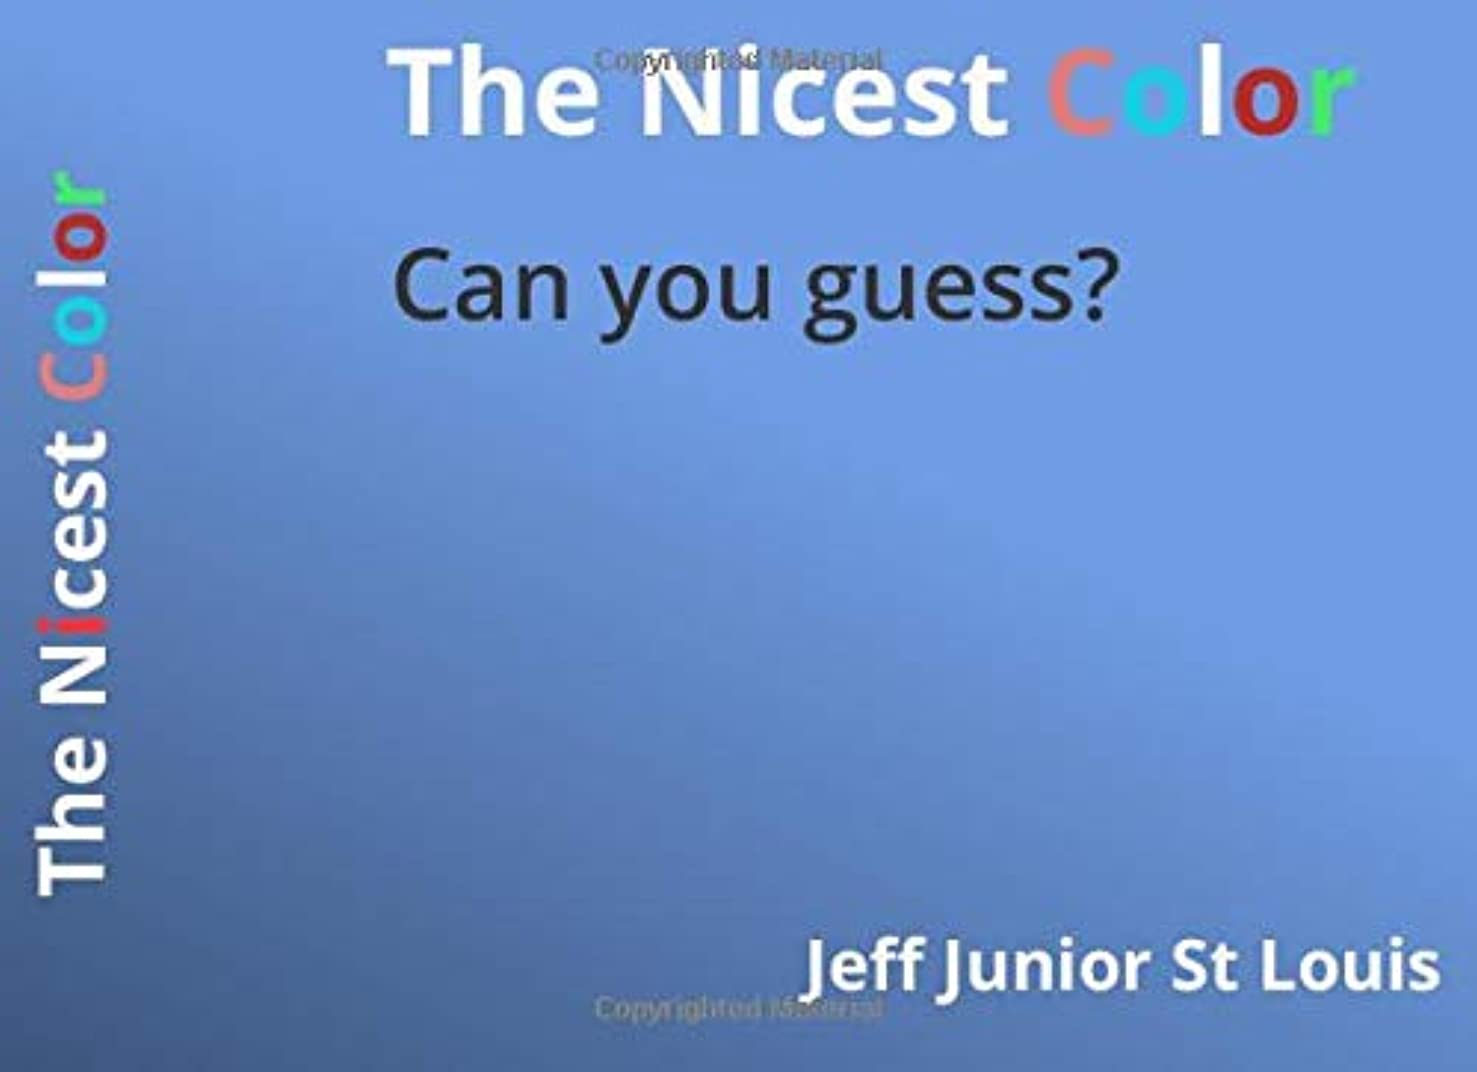 The Nicest Color: Can you guess?